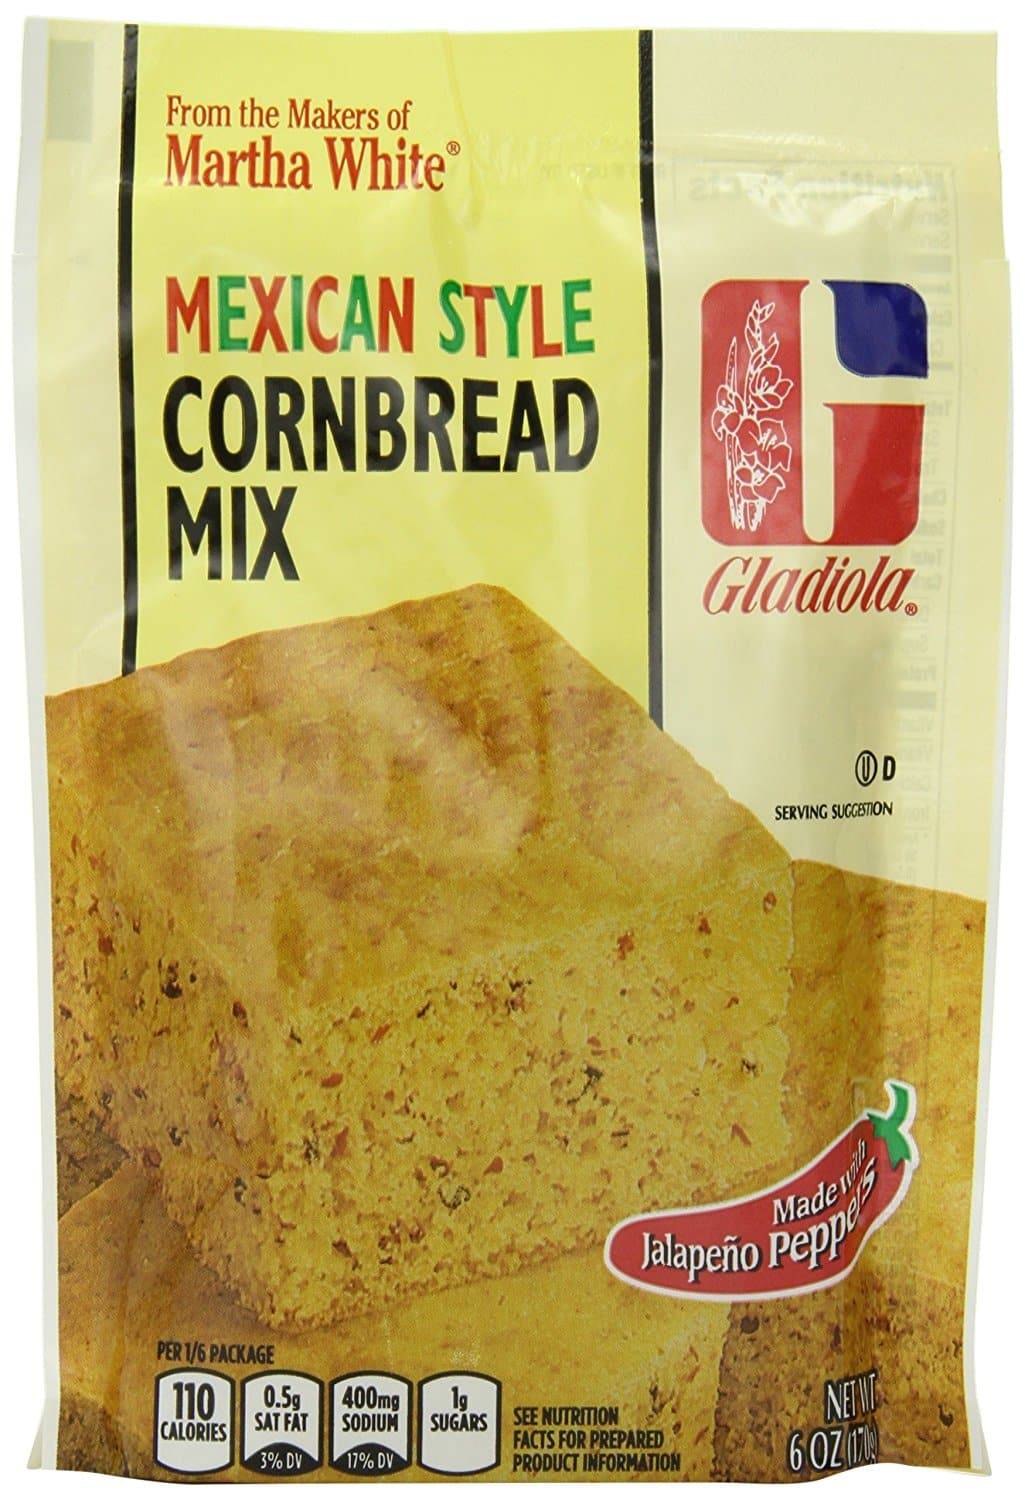 12-Pack of 6oz Gladiola Mexican Style Cornbread Mix $6.85 or Less w/ S&S + Free Shipping ~ Amazon